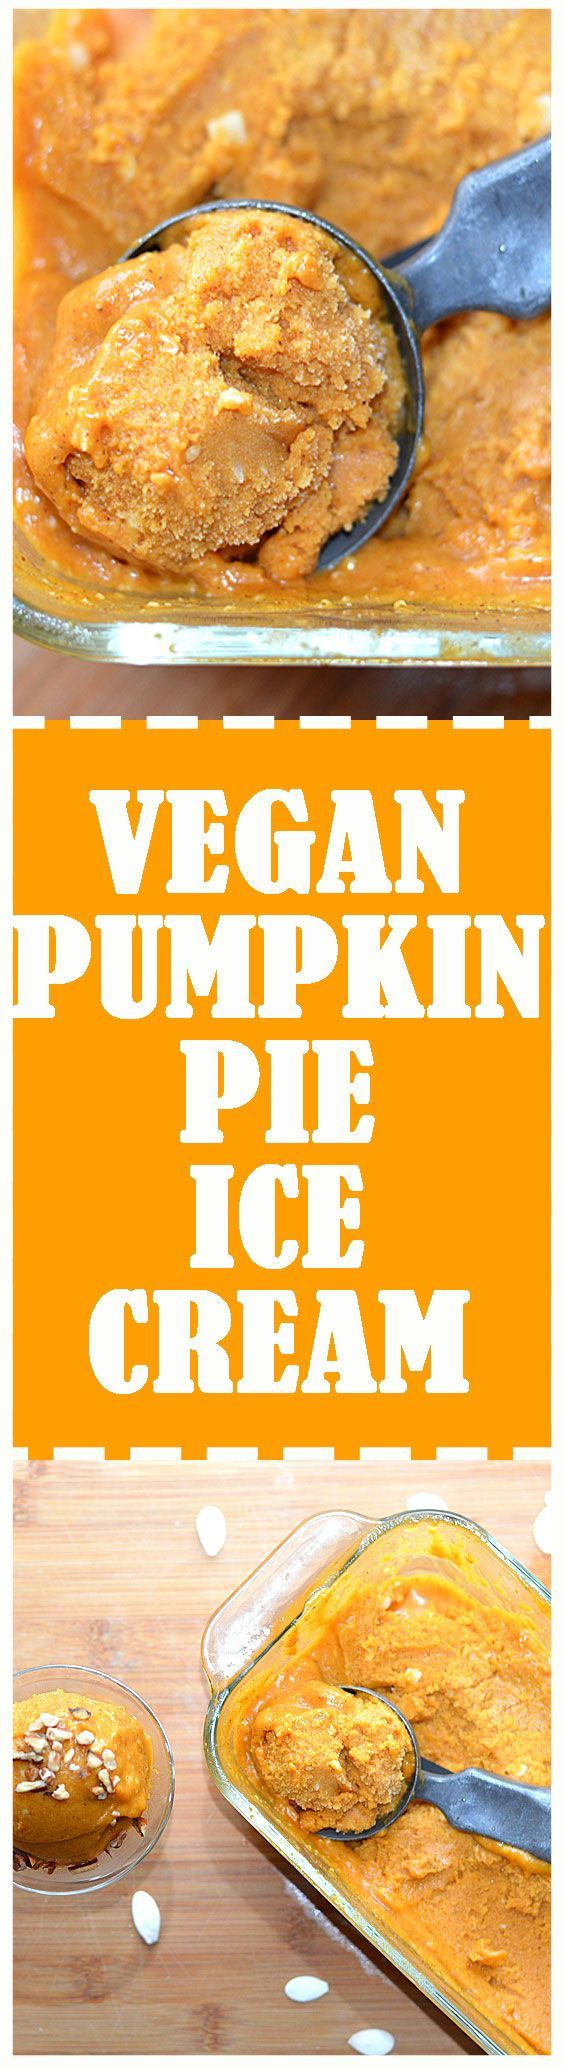 ... Pumpkin Ice Cream is a easy to make and better than eating pumpkin pie